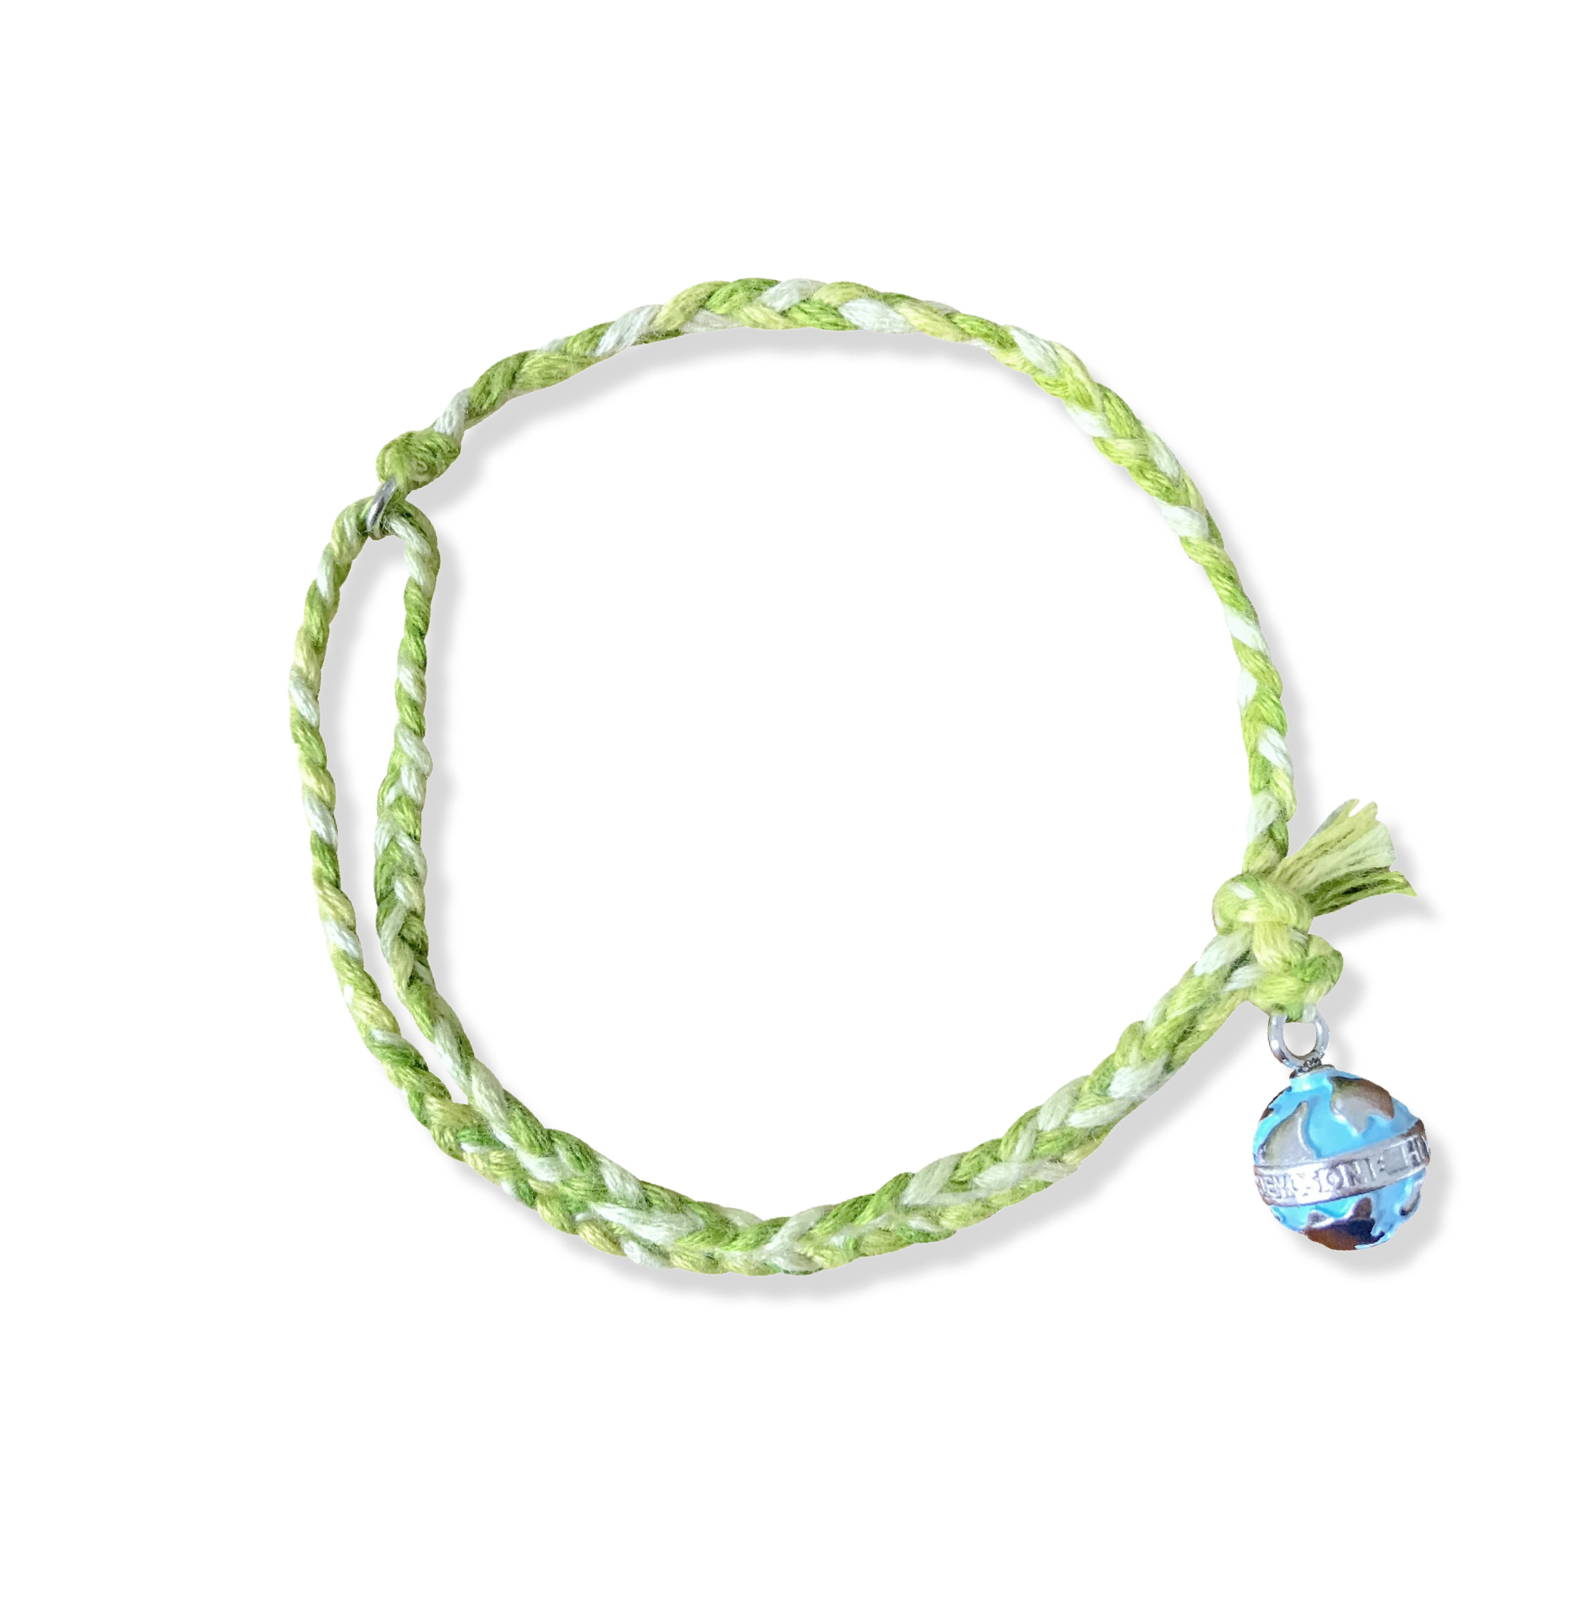 save the trees, bracelet that plant tree, trees, bracelets for a cause, bracelets for a cause, bracelets for charity, handmade bracelets for charity, bracelets for a good cause, cause bracelets, bracelets that give back, charity bracelet, handmade bracelets for a cause